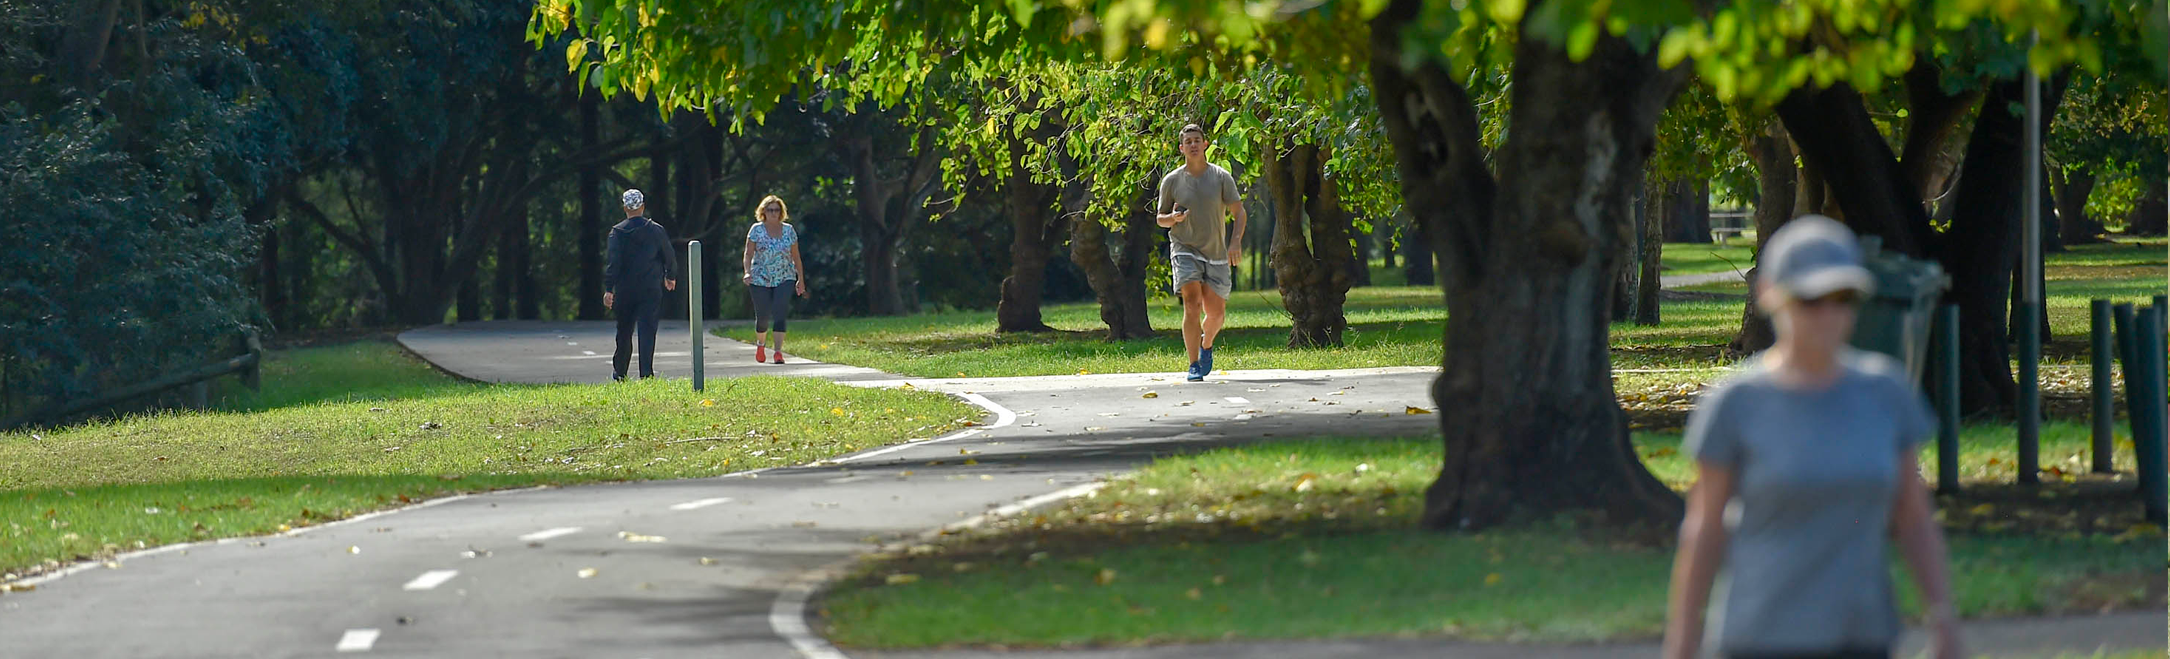 People walking and jogging through a park in Western Sydney.